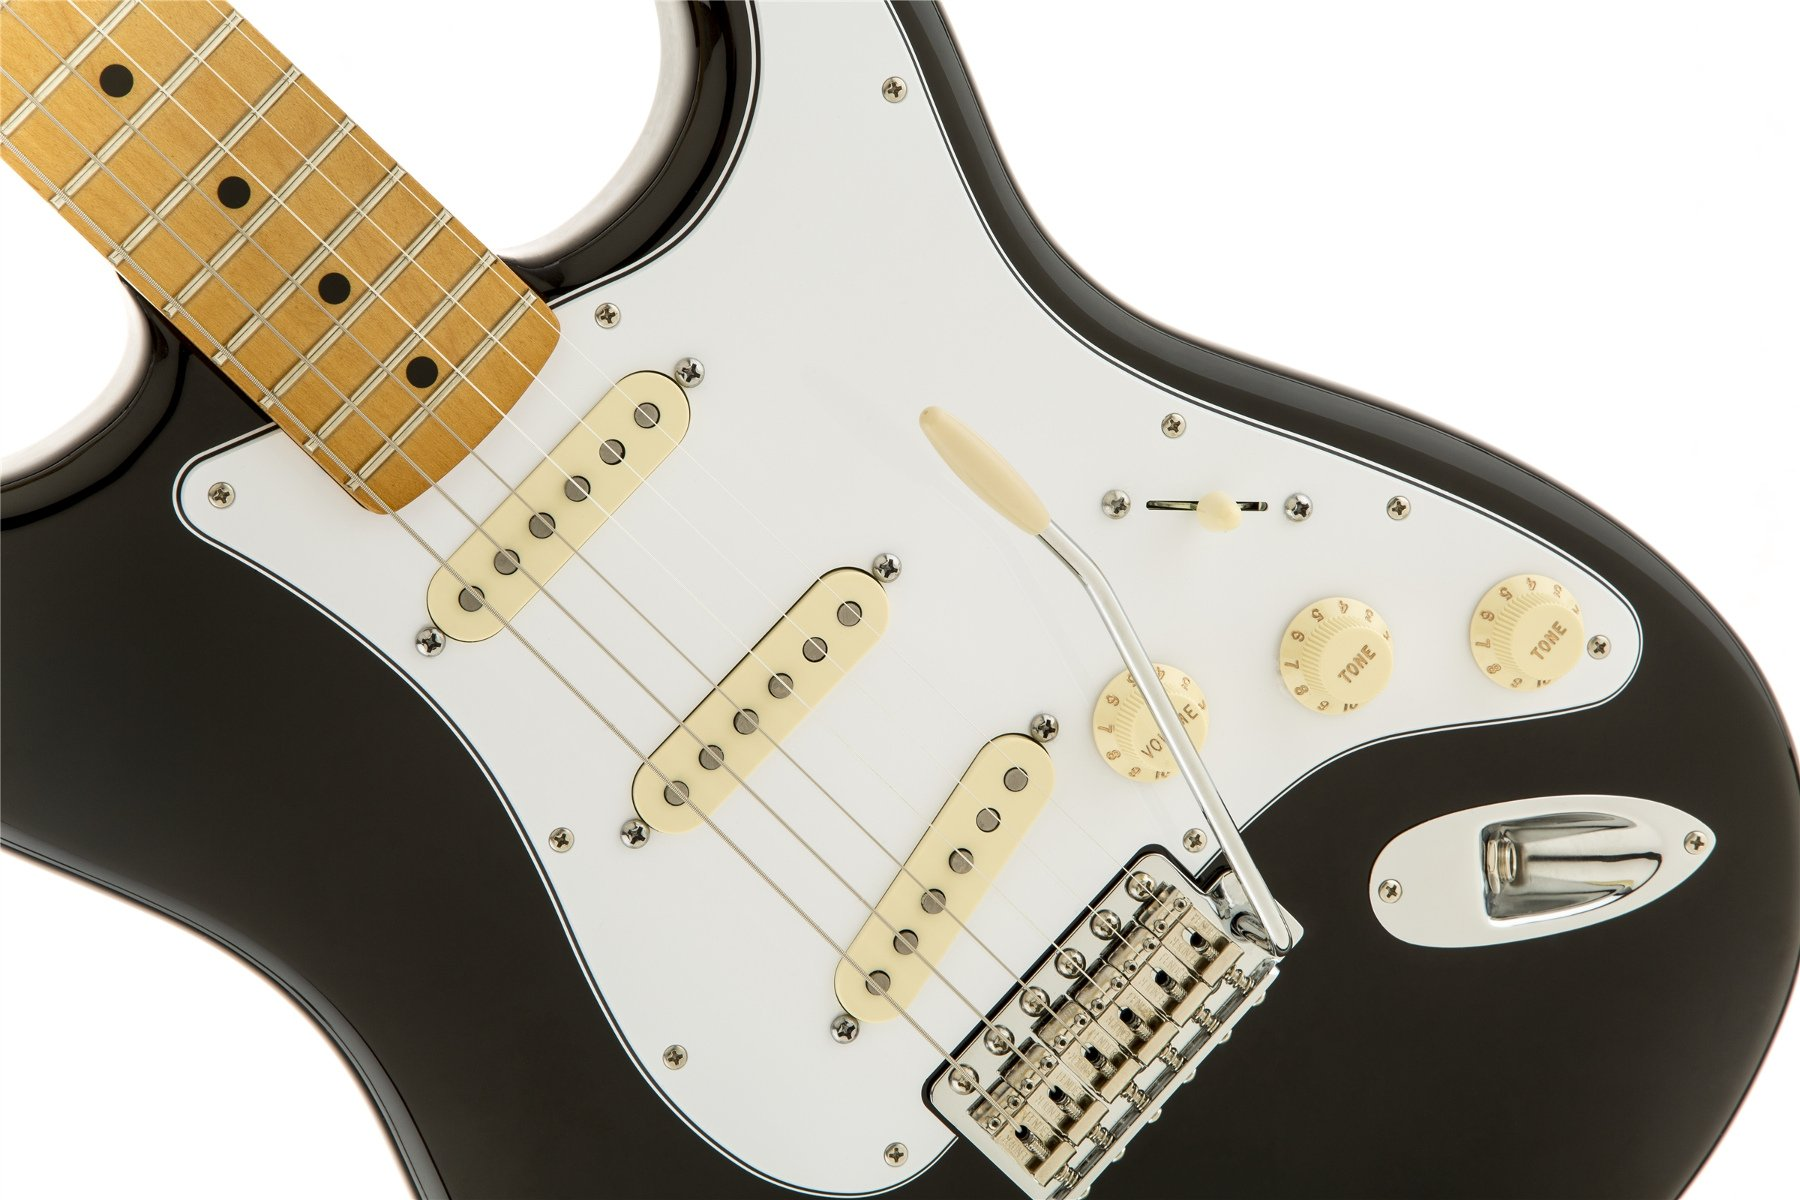 Special Edition Electric Guitar in Black with Reverse Headstock and American Vintage '65 SSS Pickup Configuration